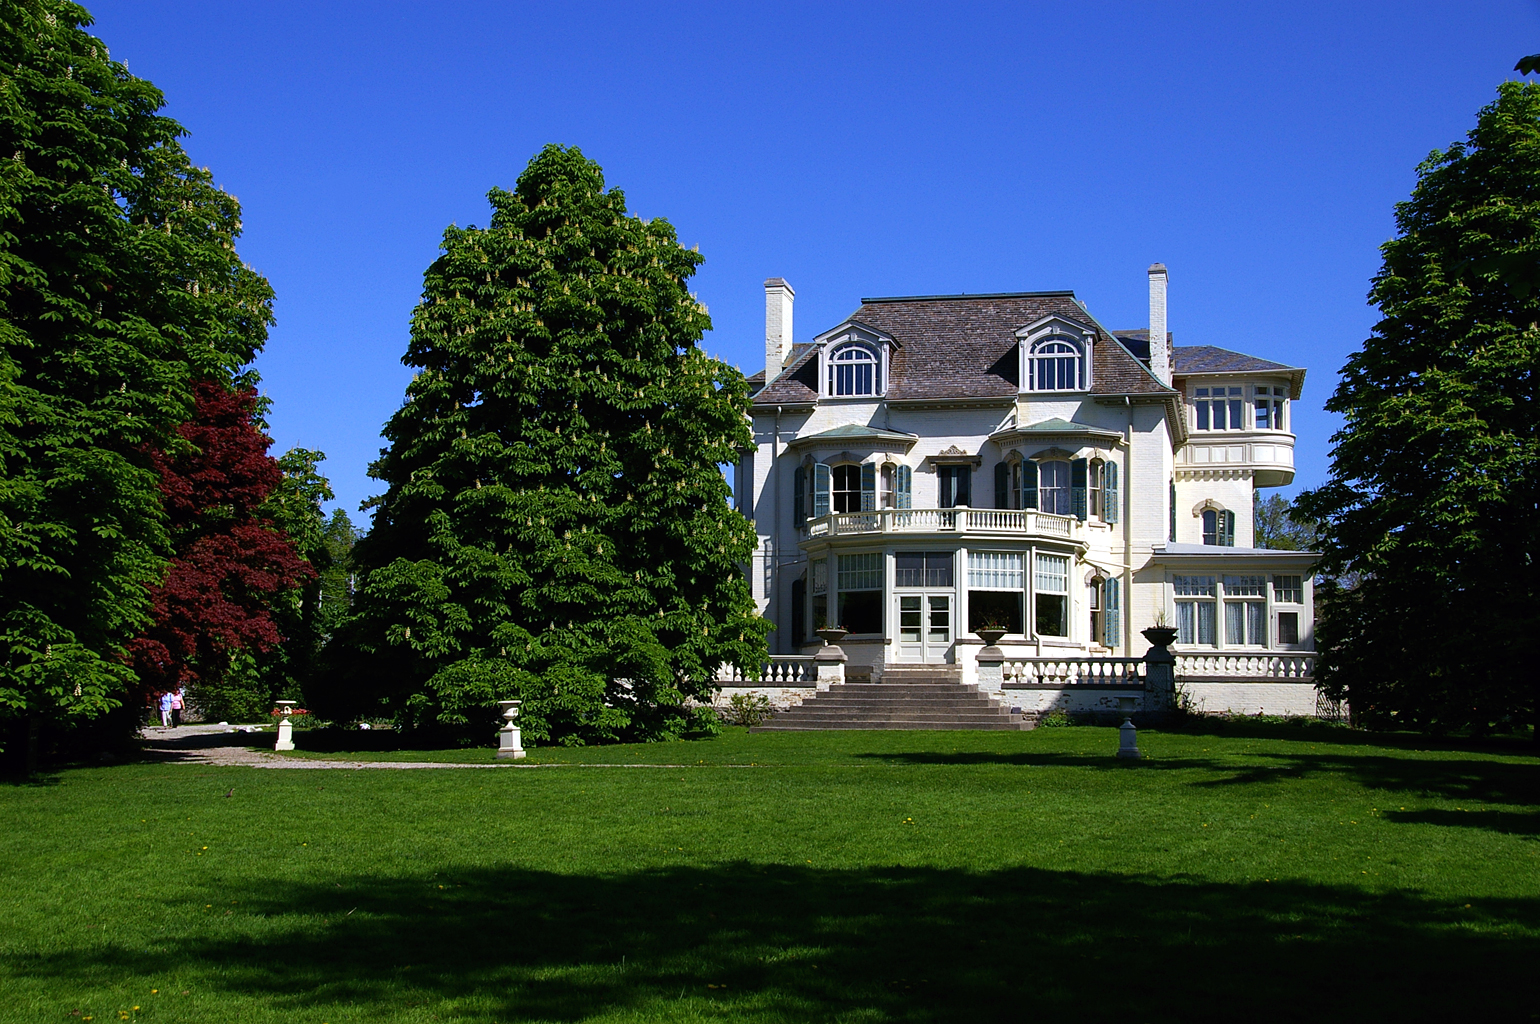 Spadina House in Toronto, a giant mansion with tall trees in foreground.